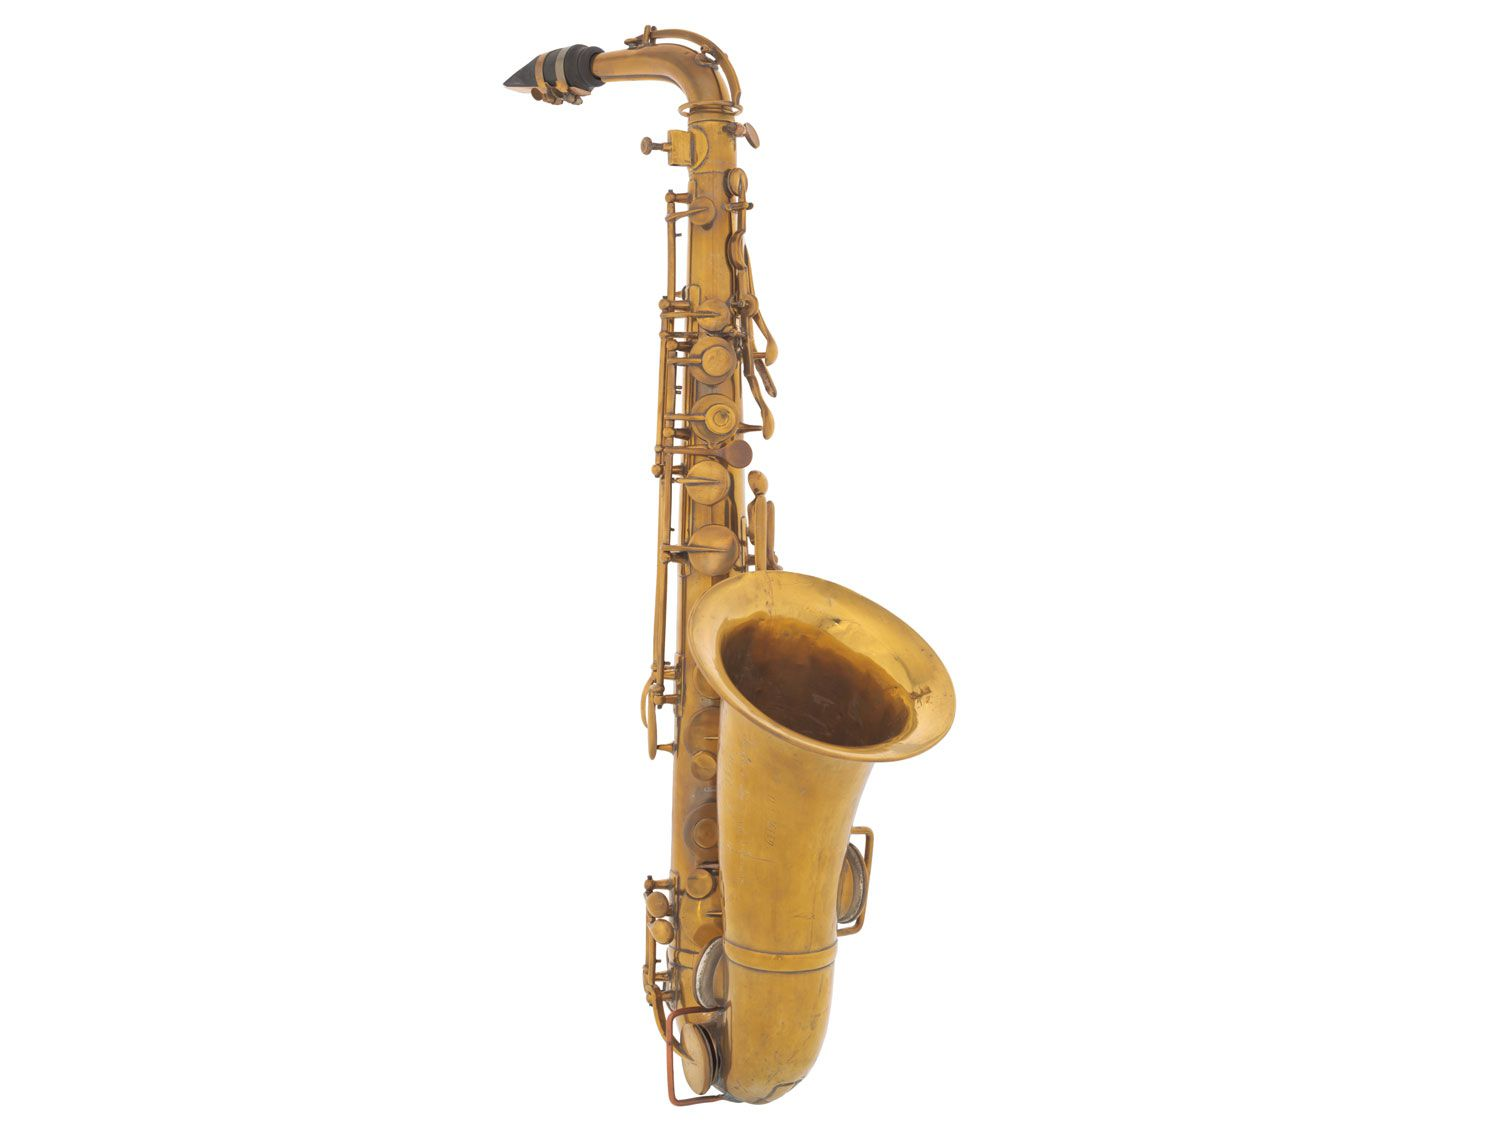 The First Saxophone Was Made of Wood | Smart News | Smithsonian